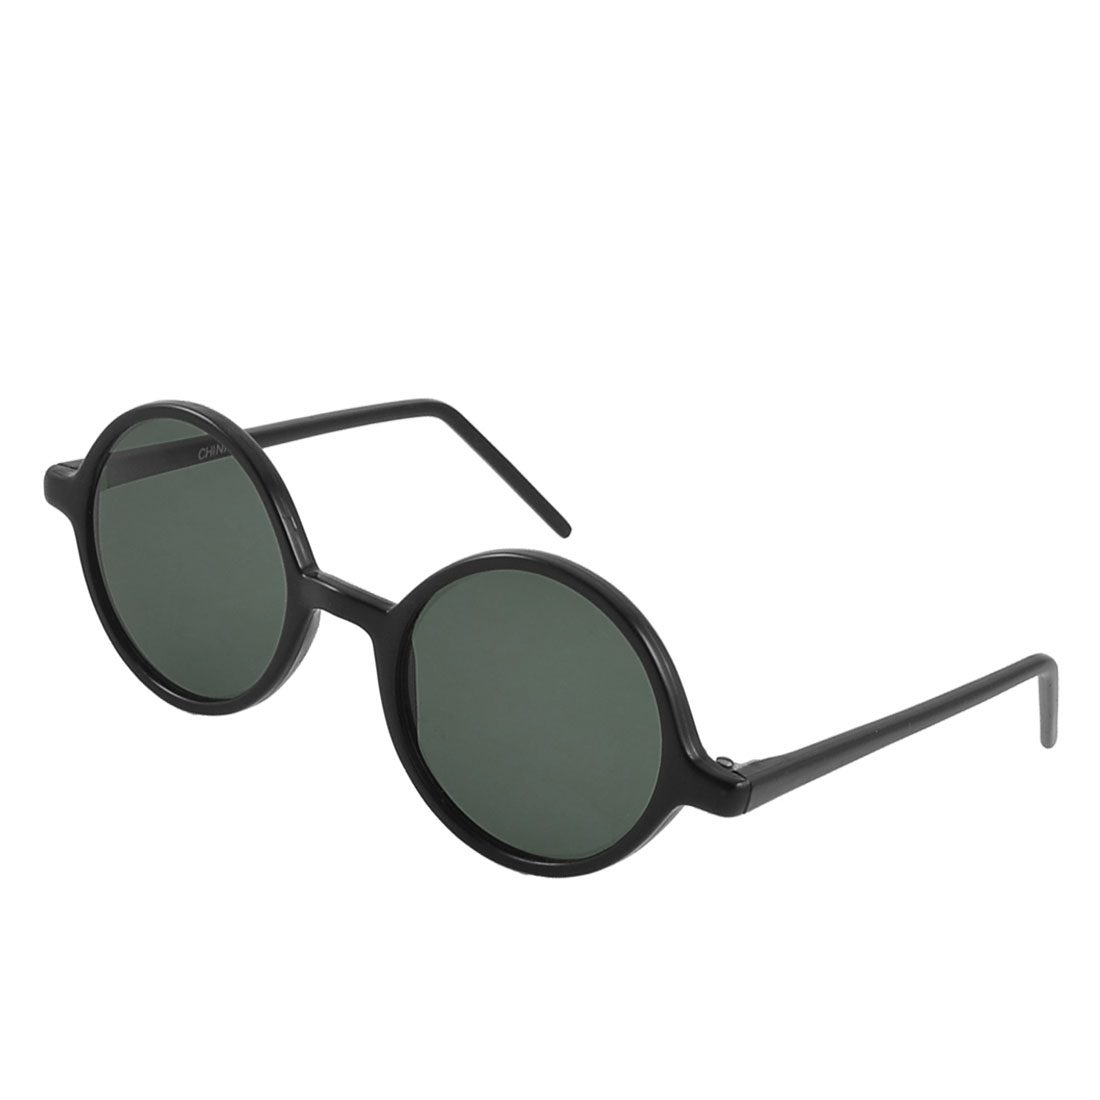 Retro Style Black Plastic Slim Arms Full Frame Round Lens Sunglasses for Men